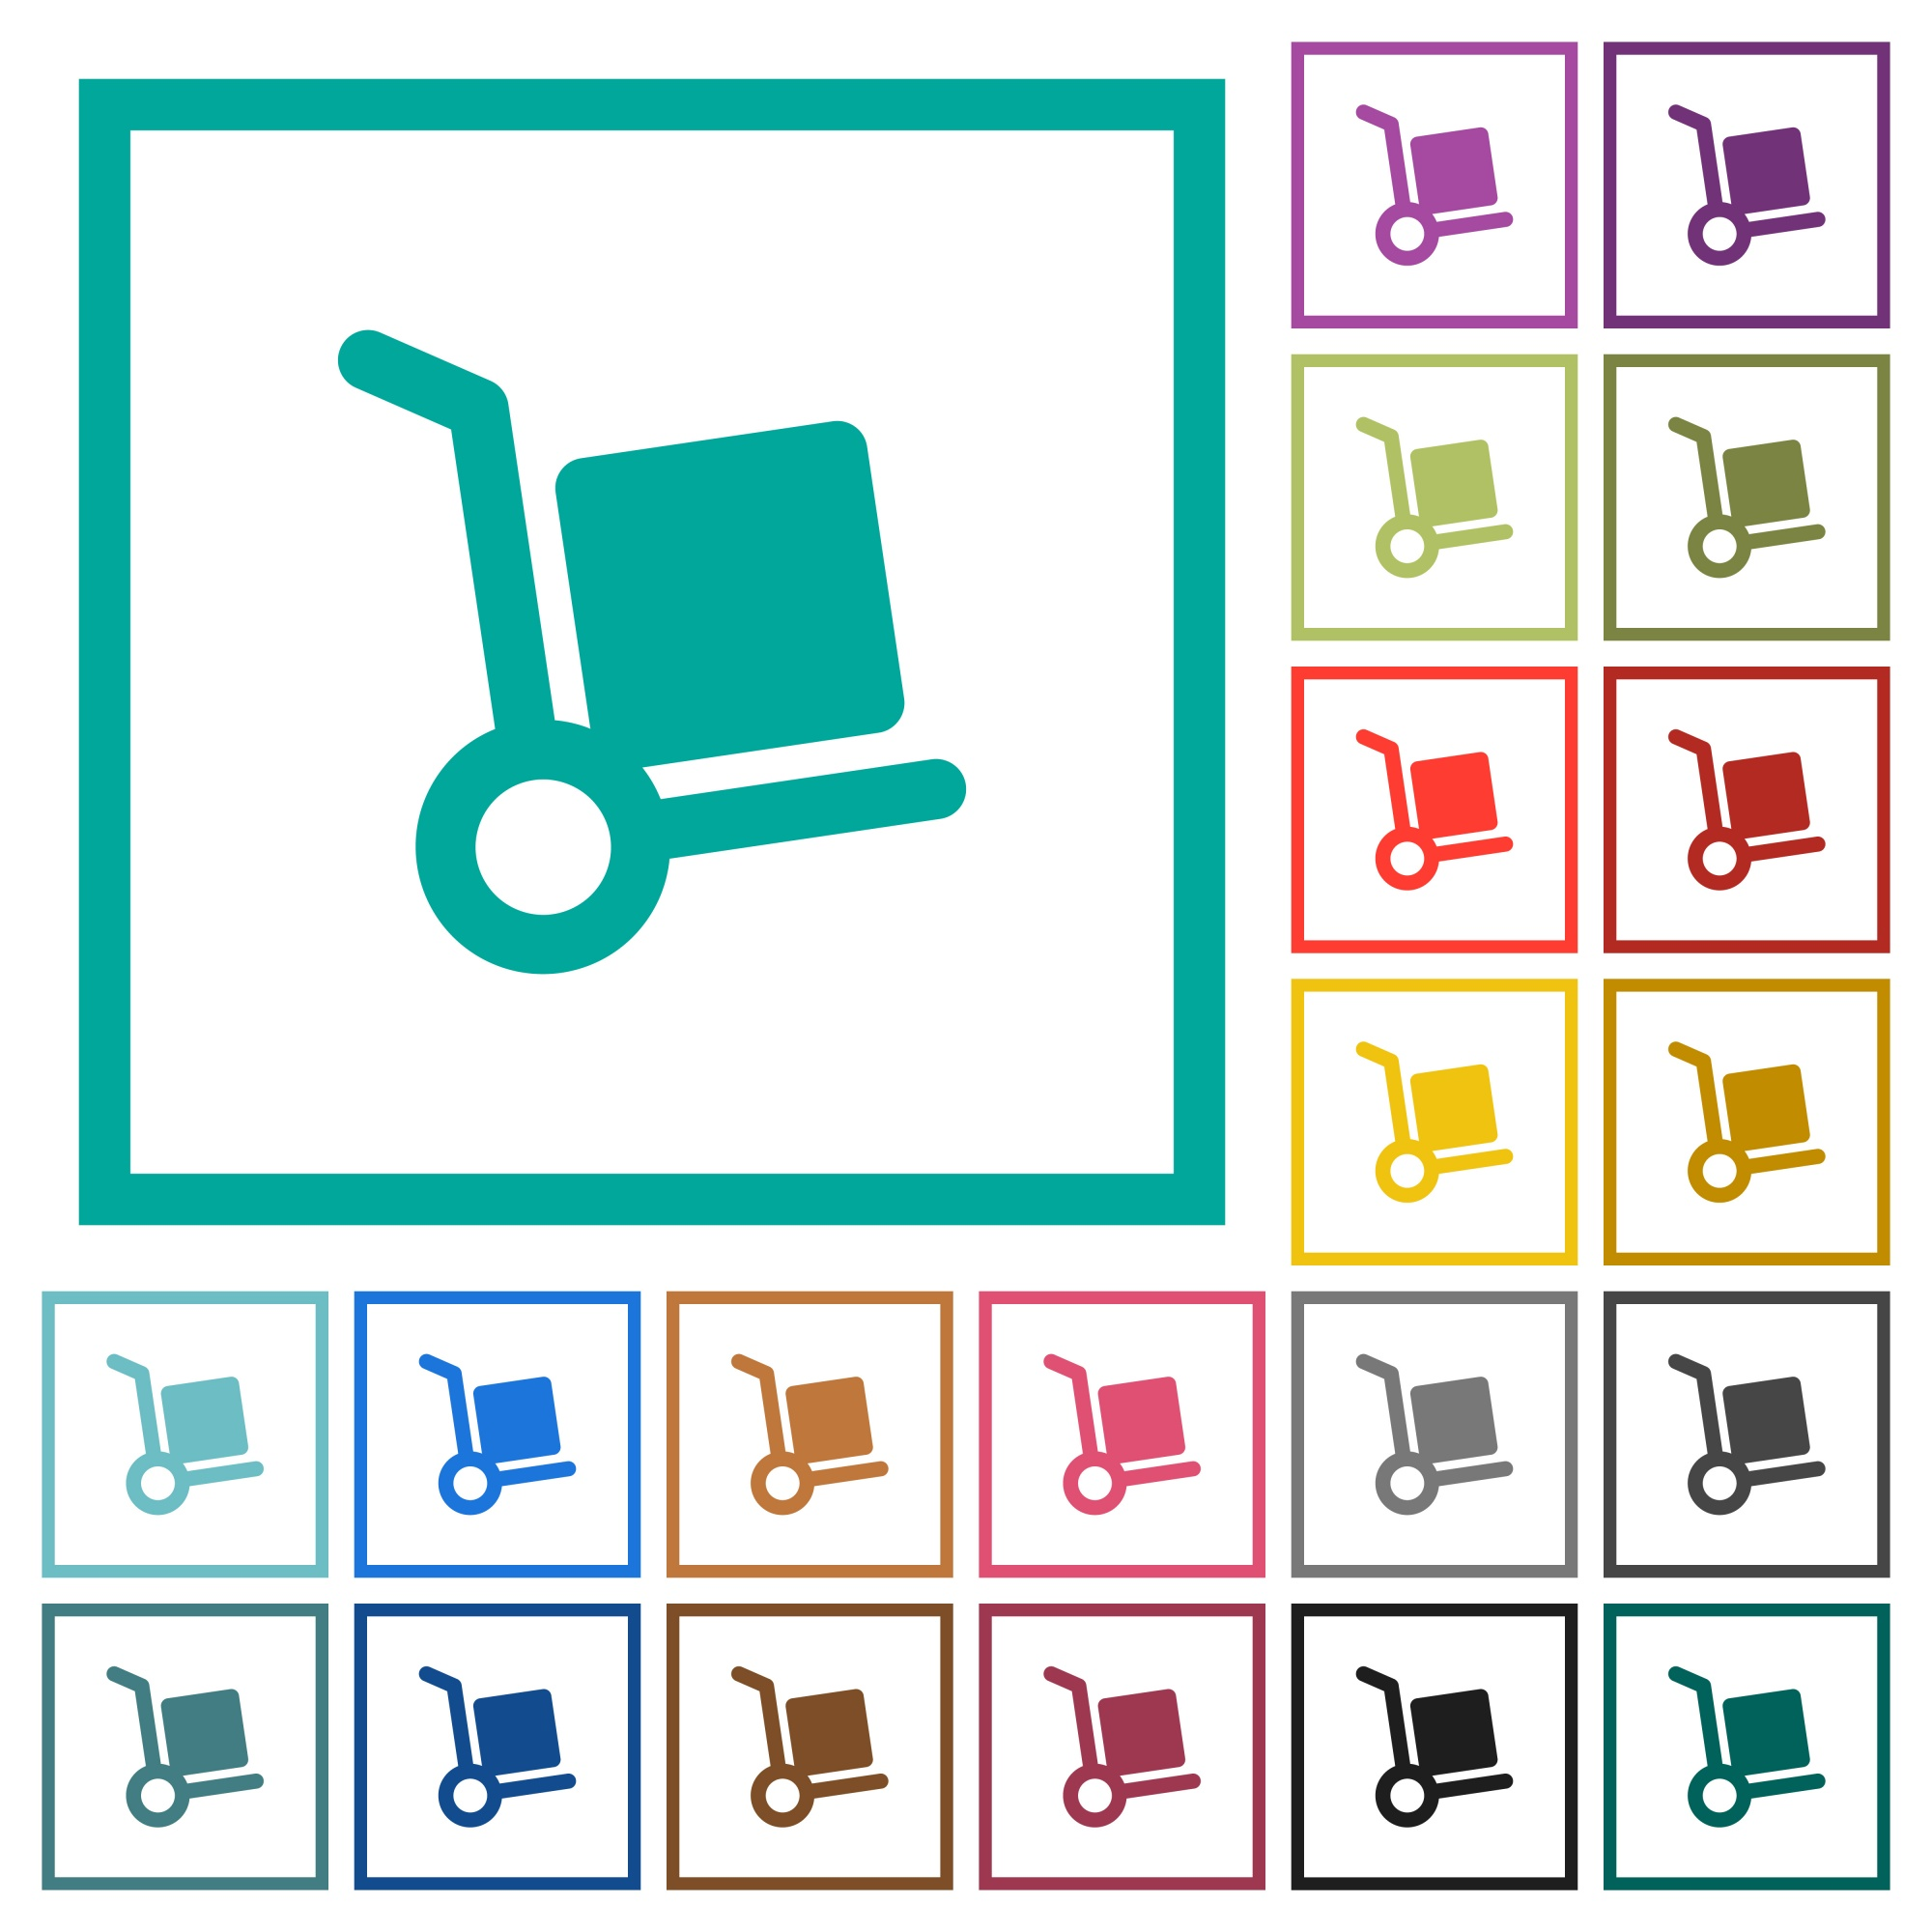 Hand truck flat color icons with quadrant frames on white background - Free image